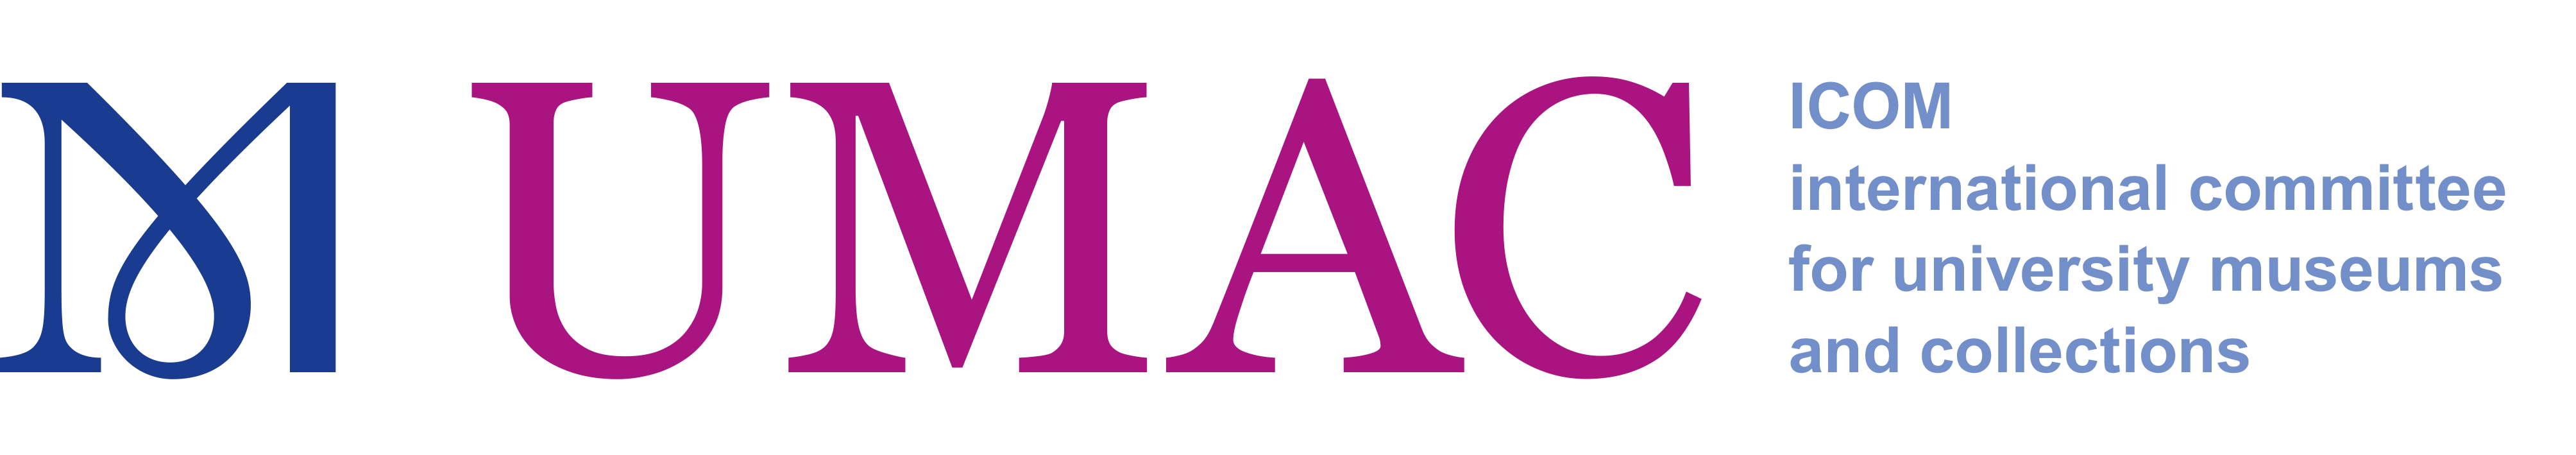 logo for ICOM International Committee for University Museums and Collections